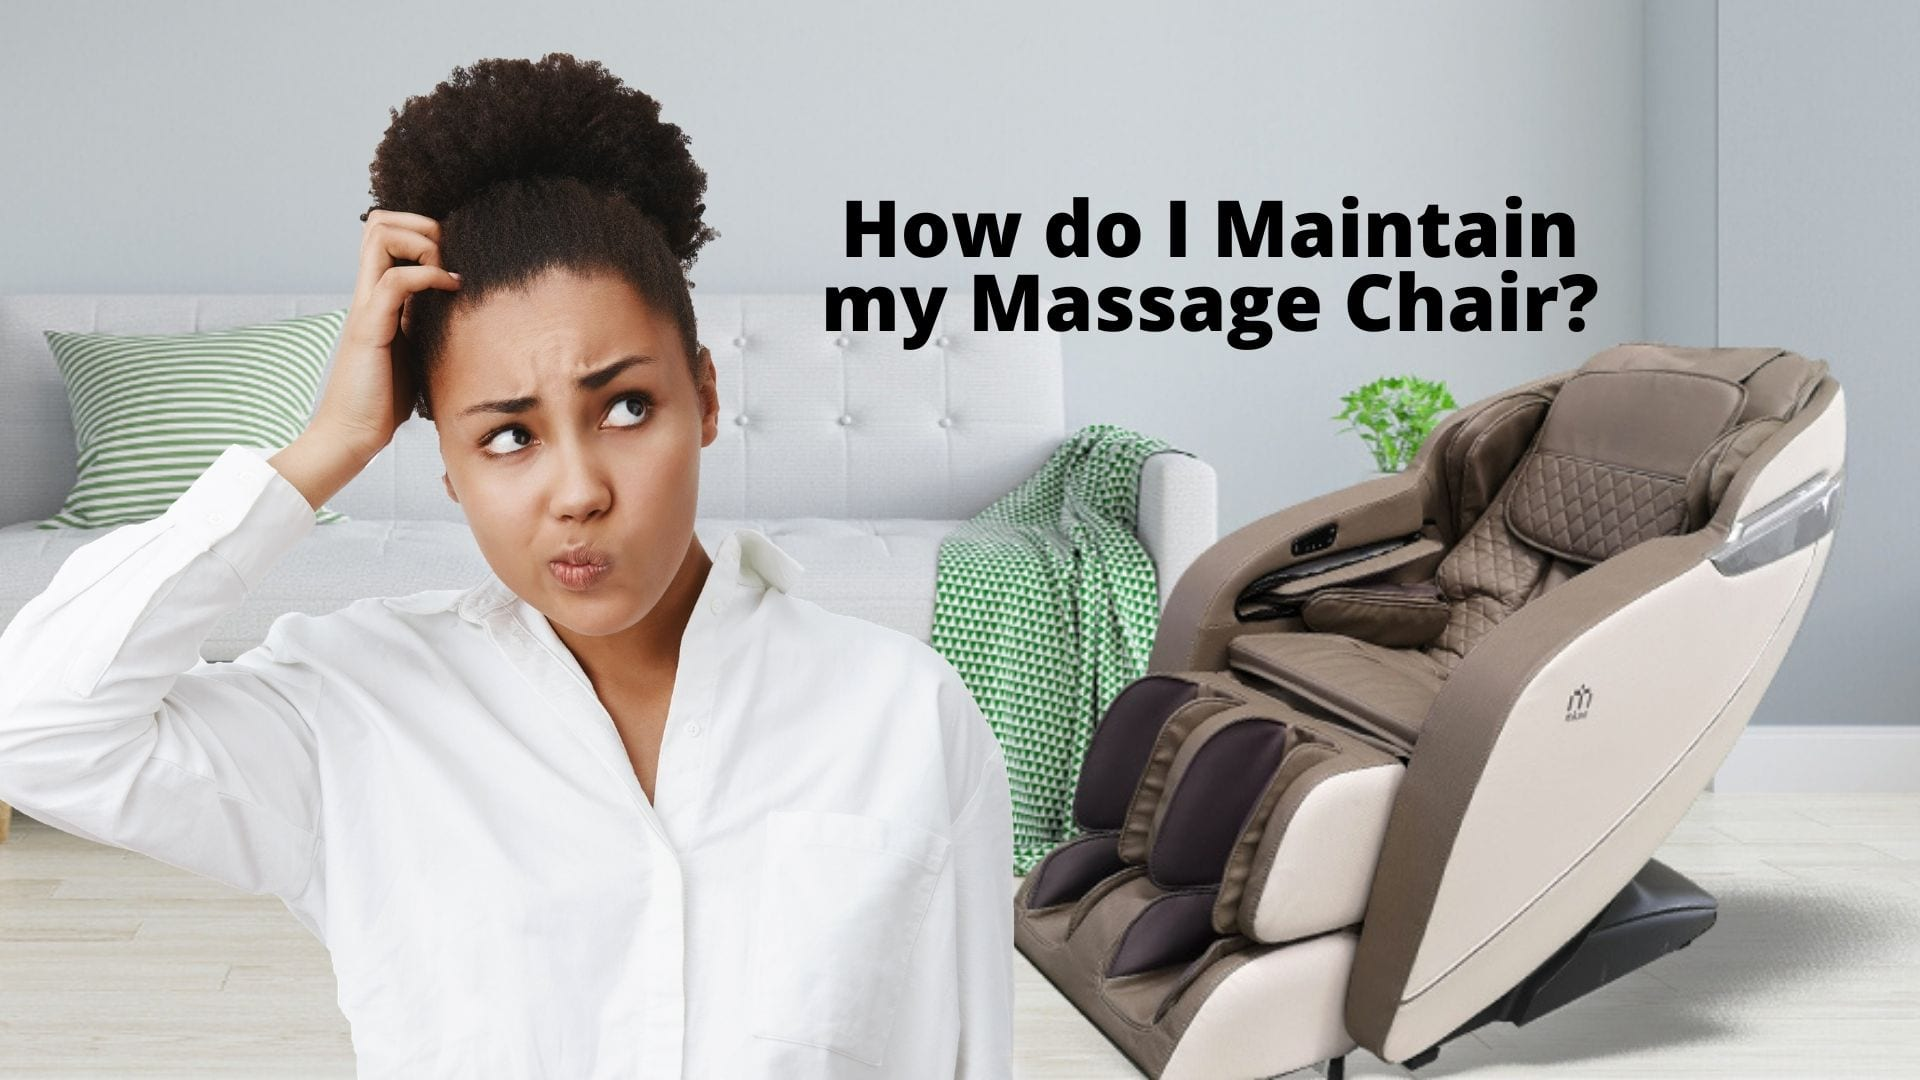 How do i maintain my massage chair?